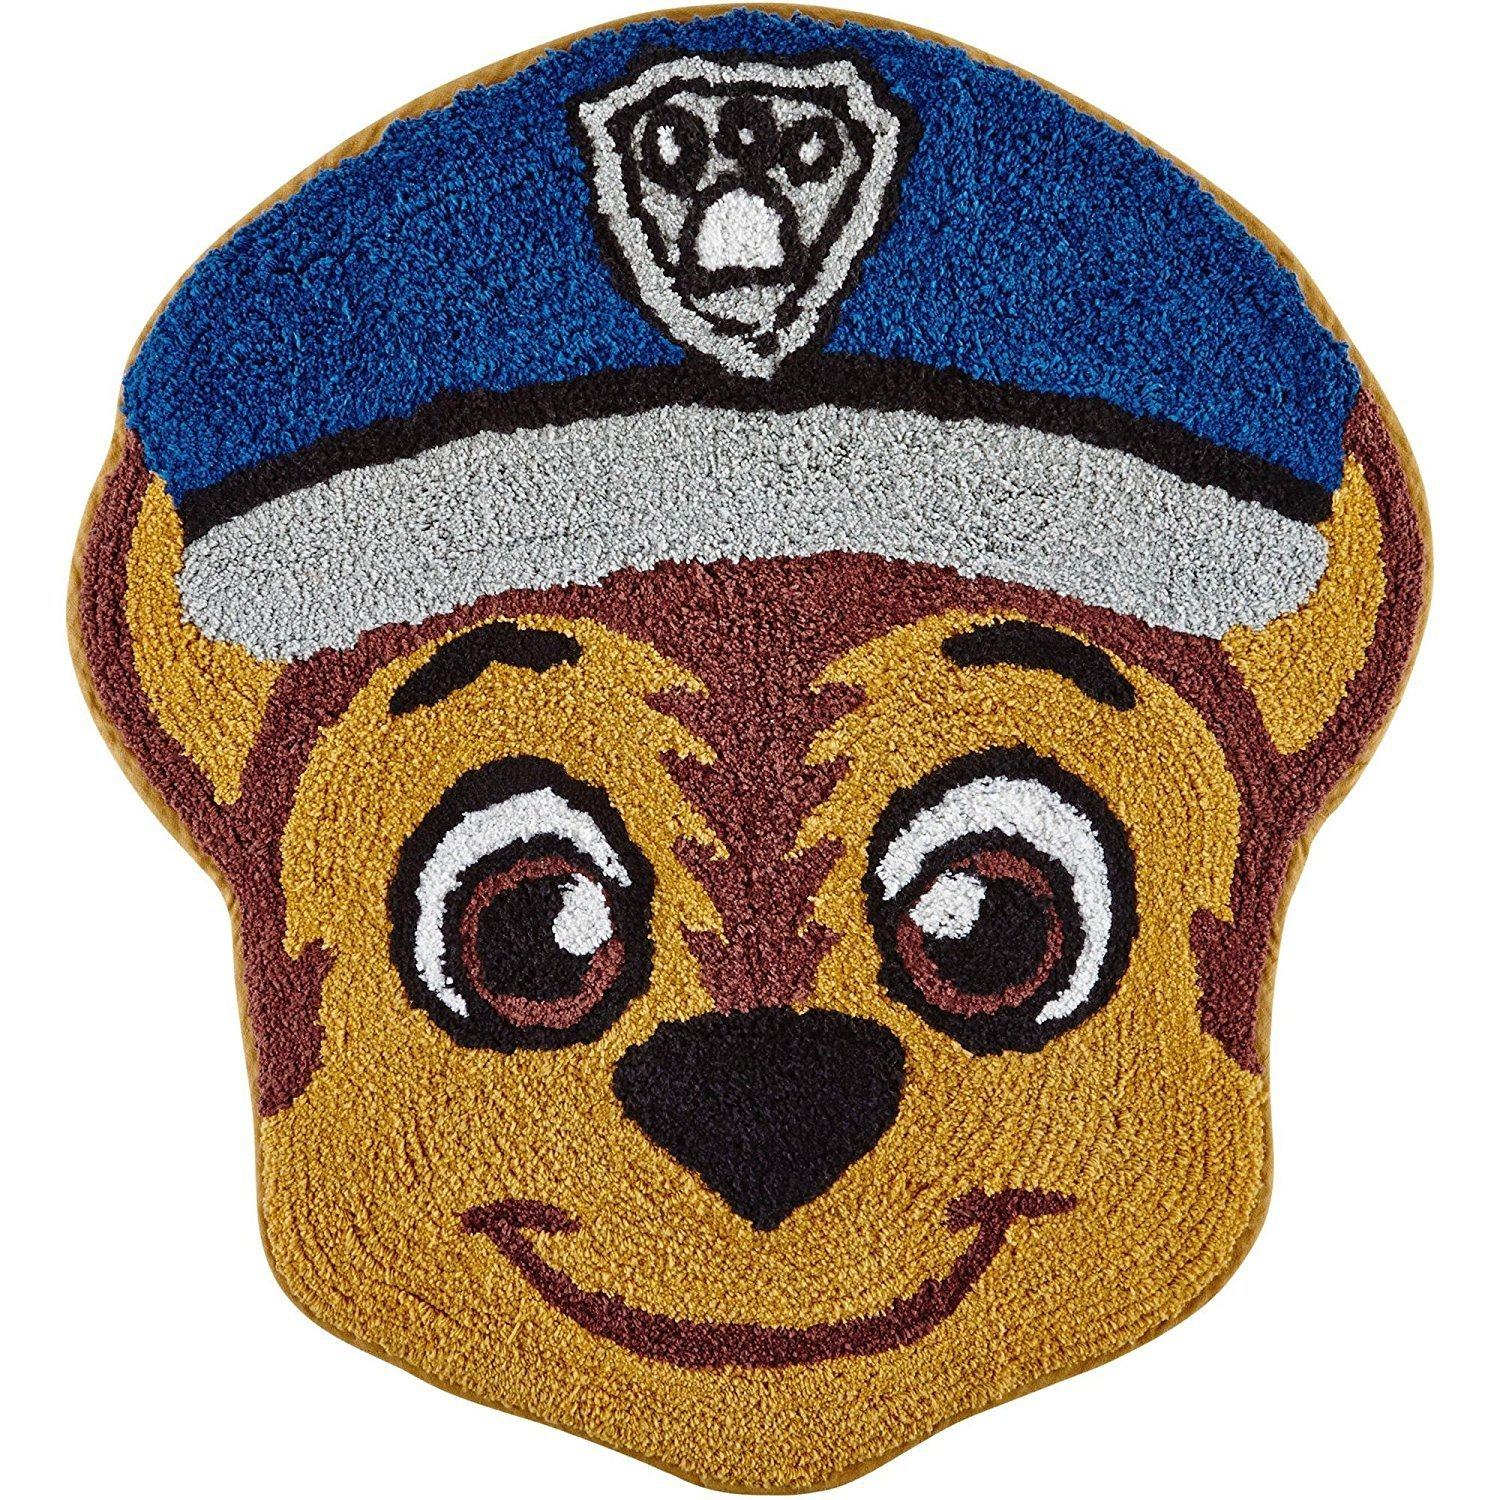 Bath Rug, 100% cotton By Paw Patrol from USA